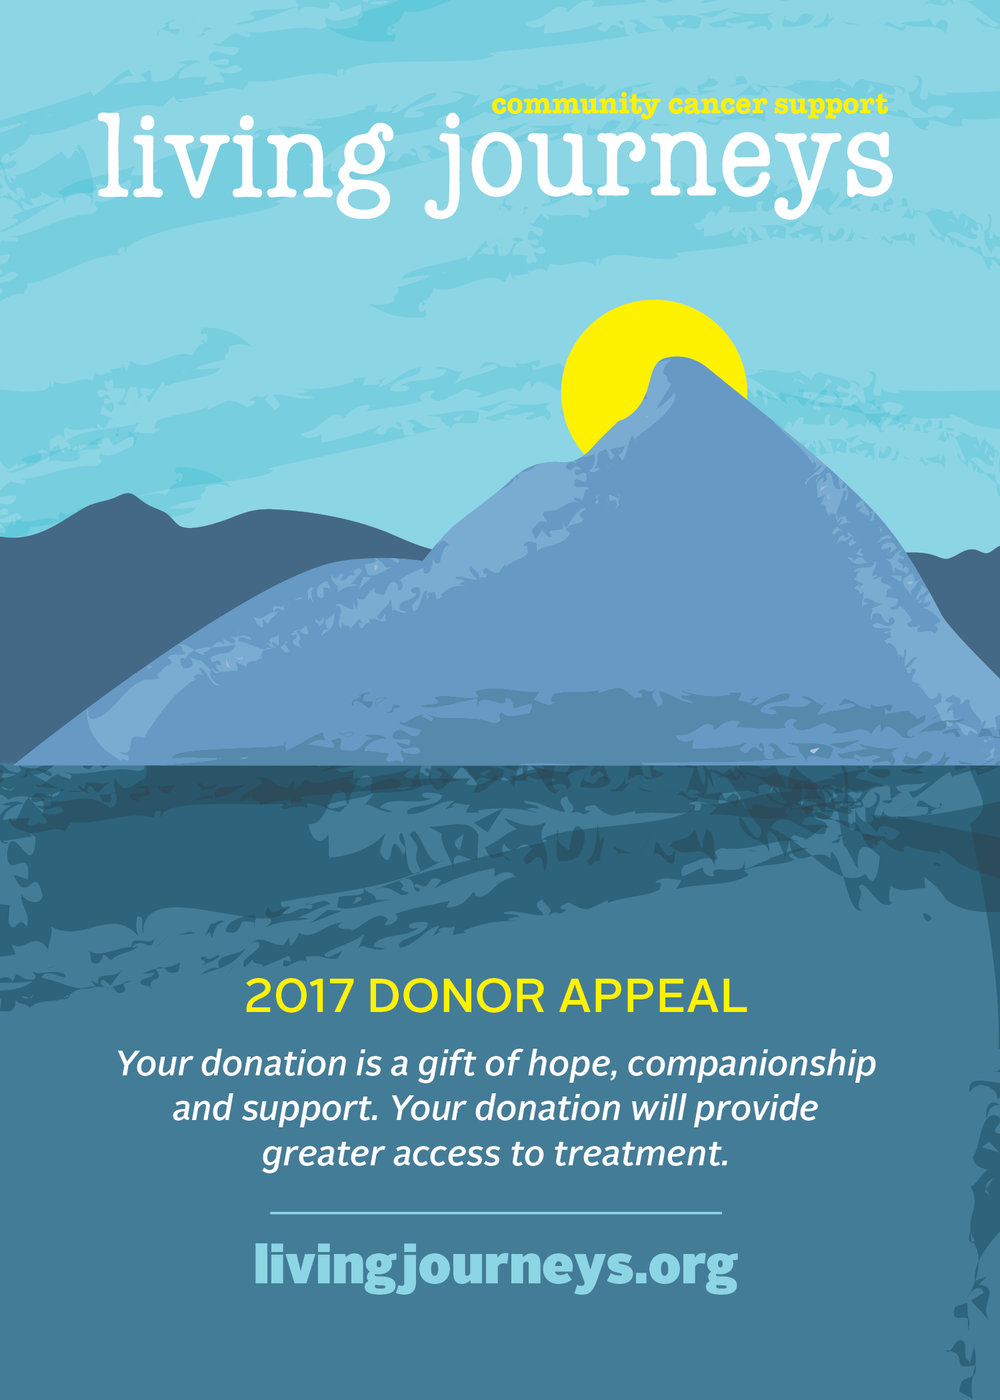 Donor Appeal Flyer.jpg